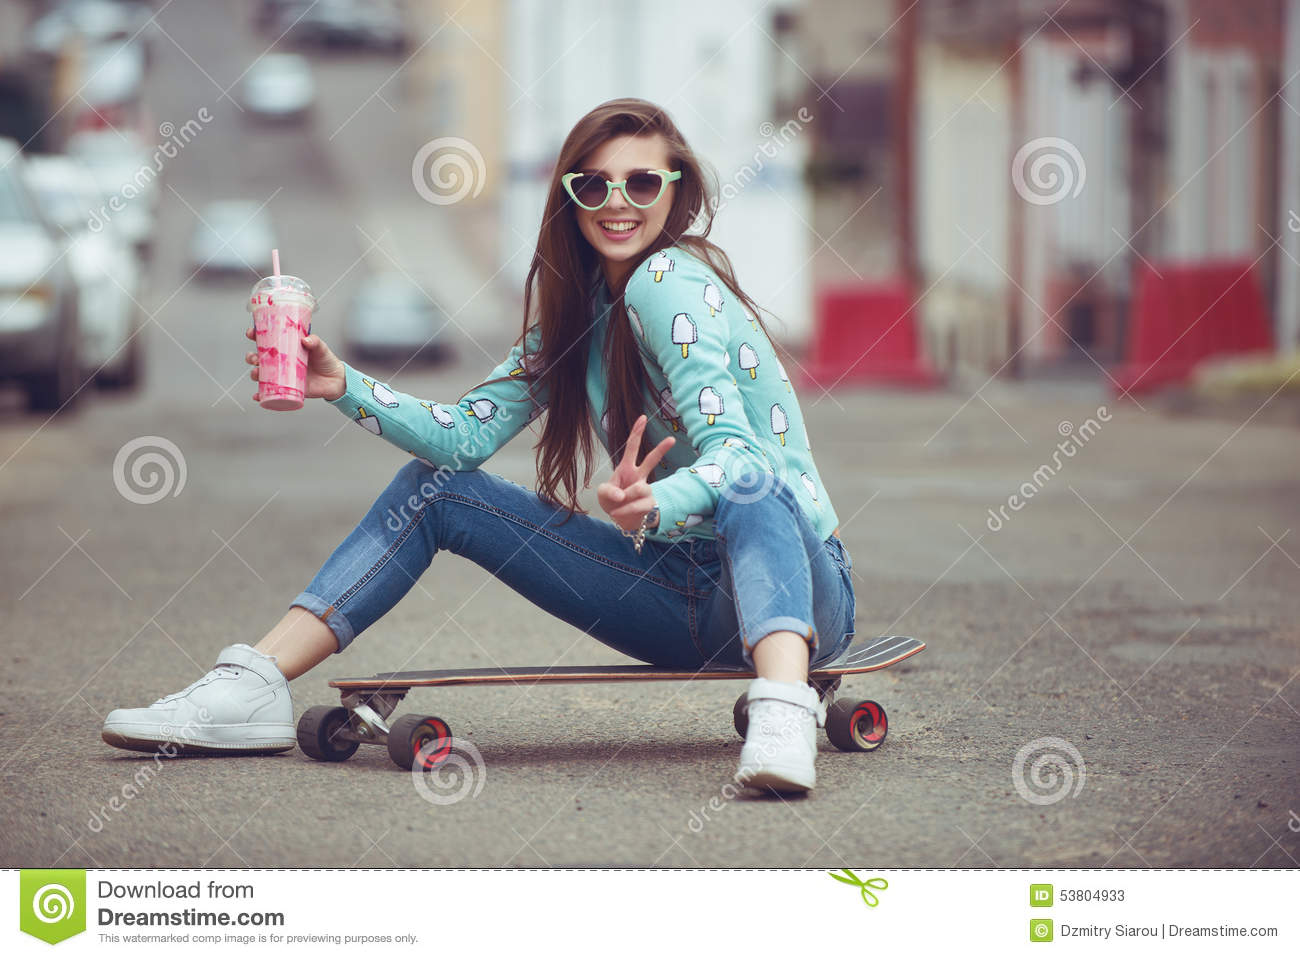 59ca633b86e Beautiful Young Woman Posing With A Skateboard Stock Image - Image ...